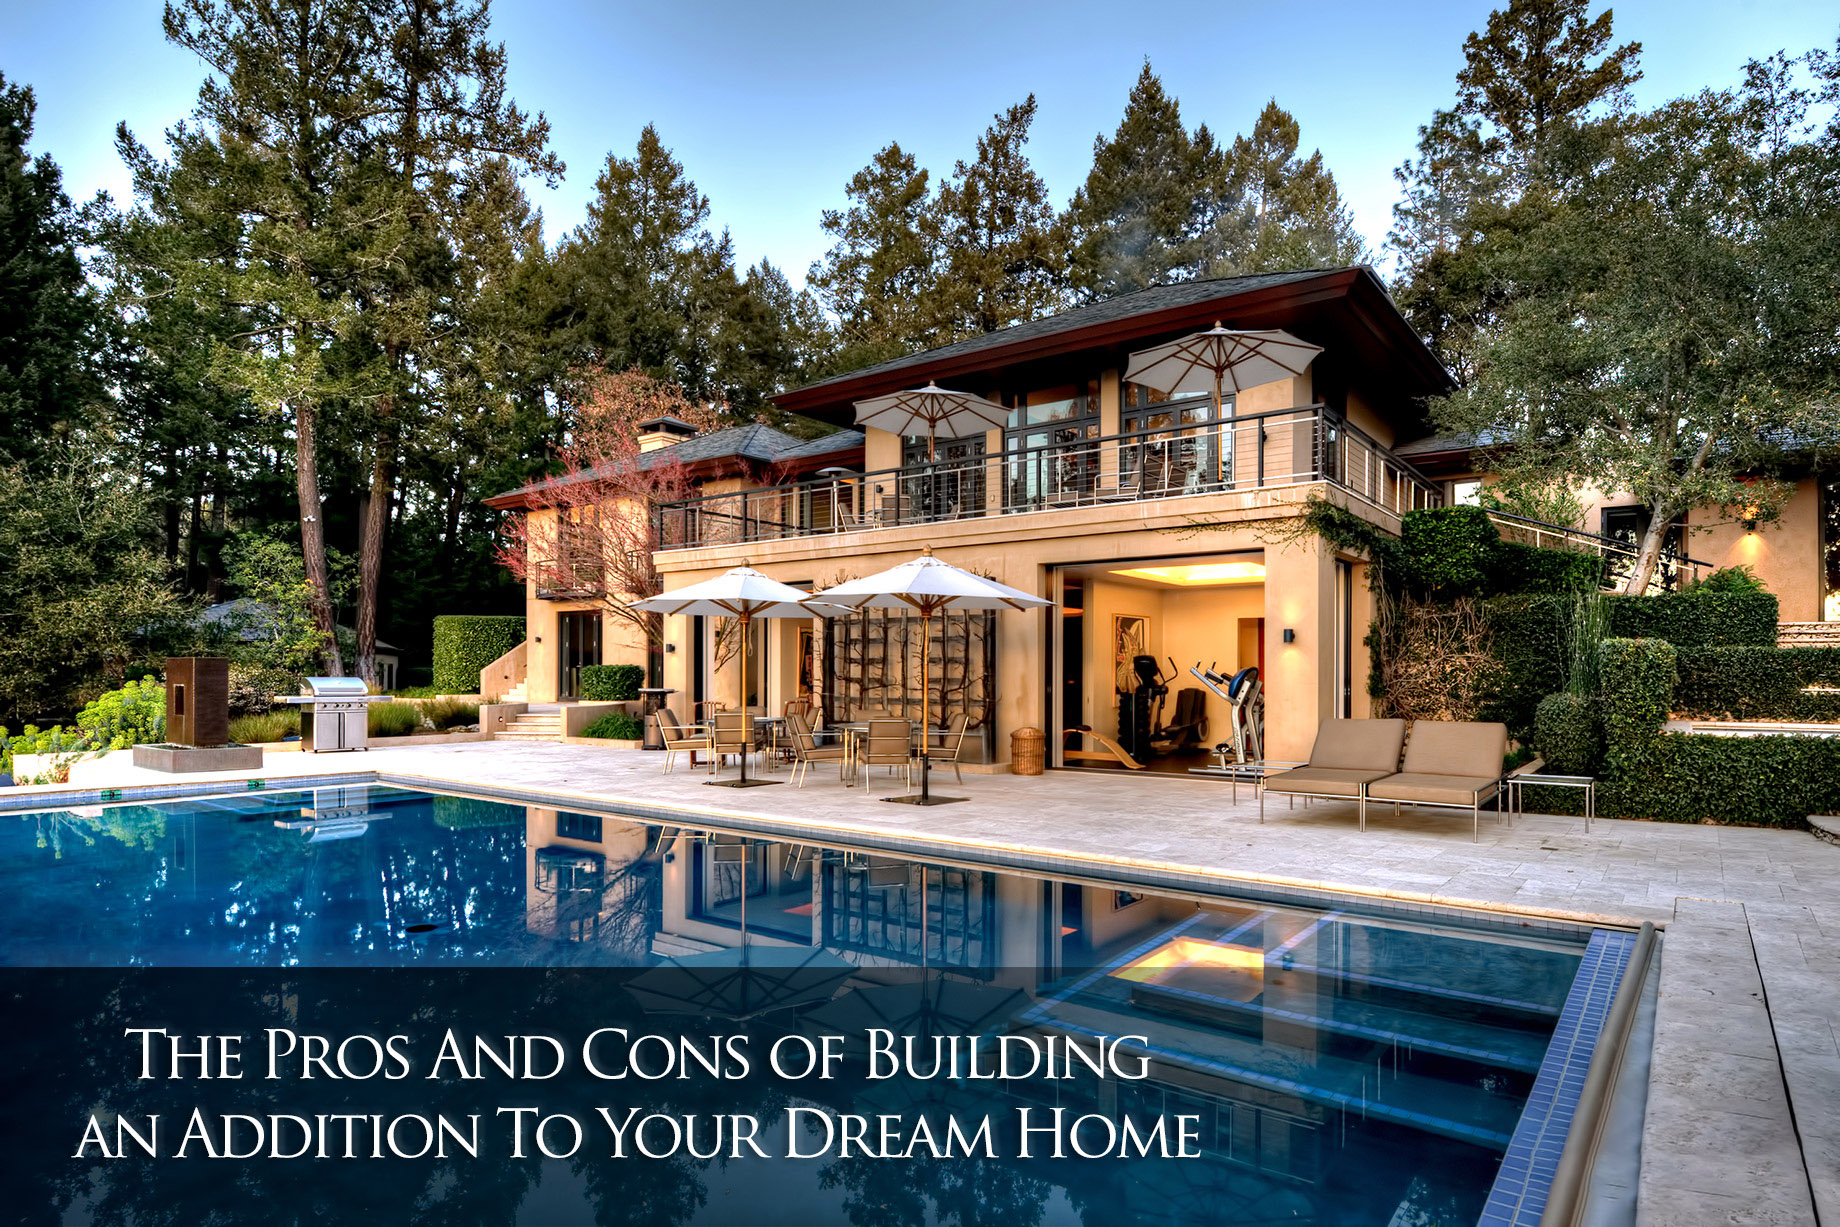 The Pros and Cons of Building an Addition To Your Dream Home